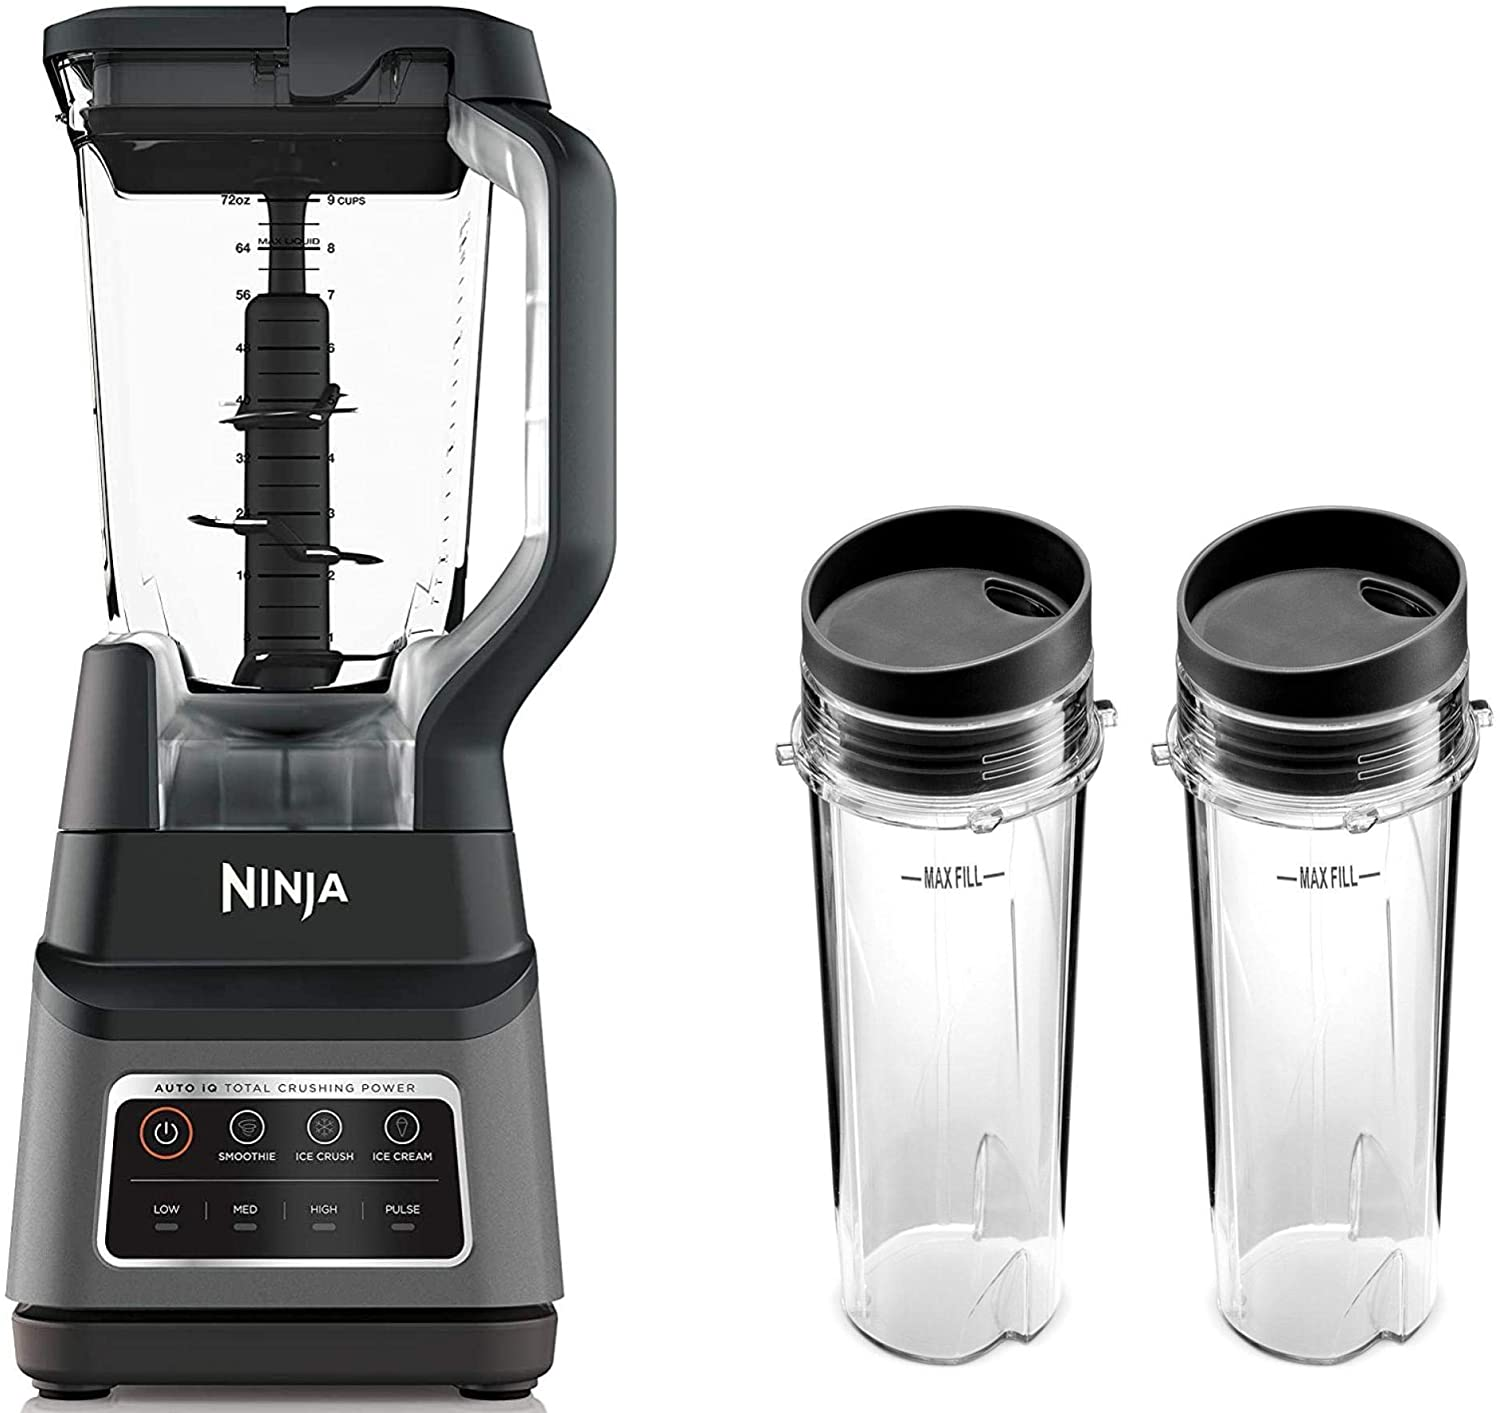 Ninja BN701 Professional Plus Blender with Auto-iQ, and 64 oz. max liquid capacity Total Crushing Pitcher